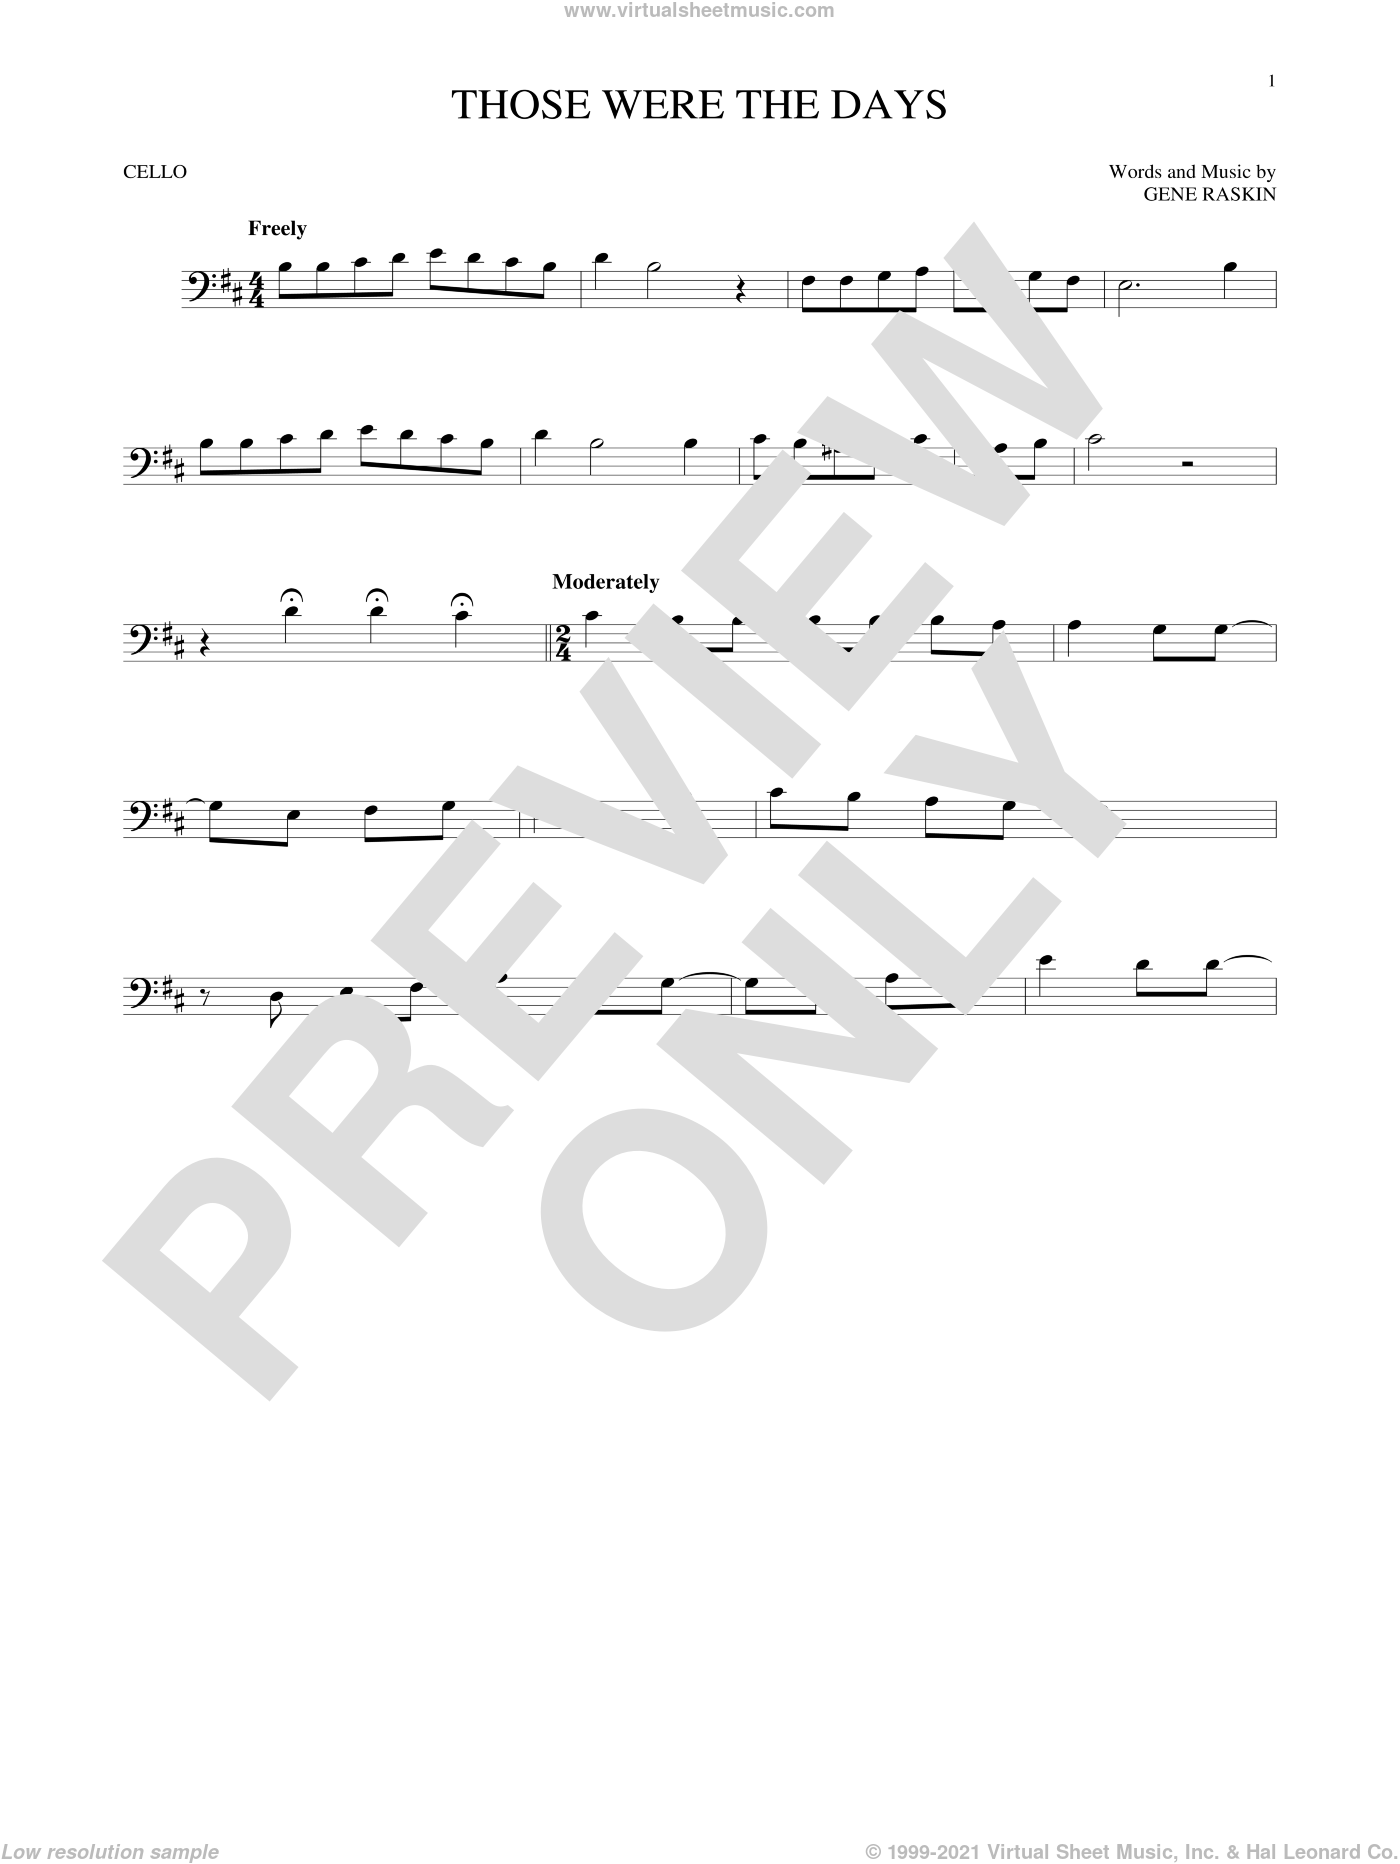 Those Were The Days sheet music for cello solo by Gene Raskin. Score Image Preview.